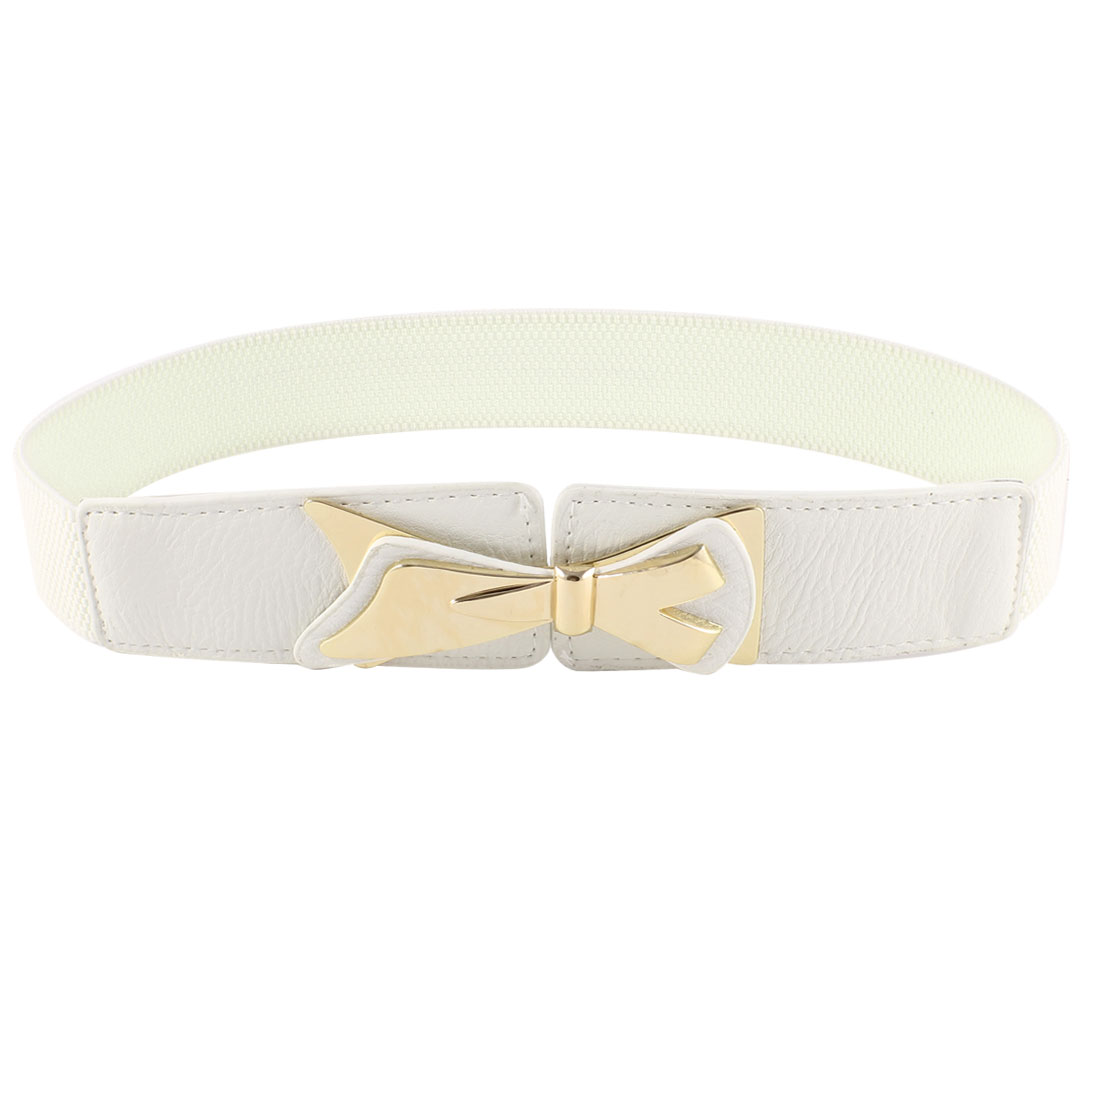 Off White Bowtie Decor Interlocking Buckle Elastic Cinch Belt for Ladies